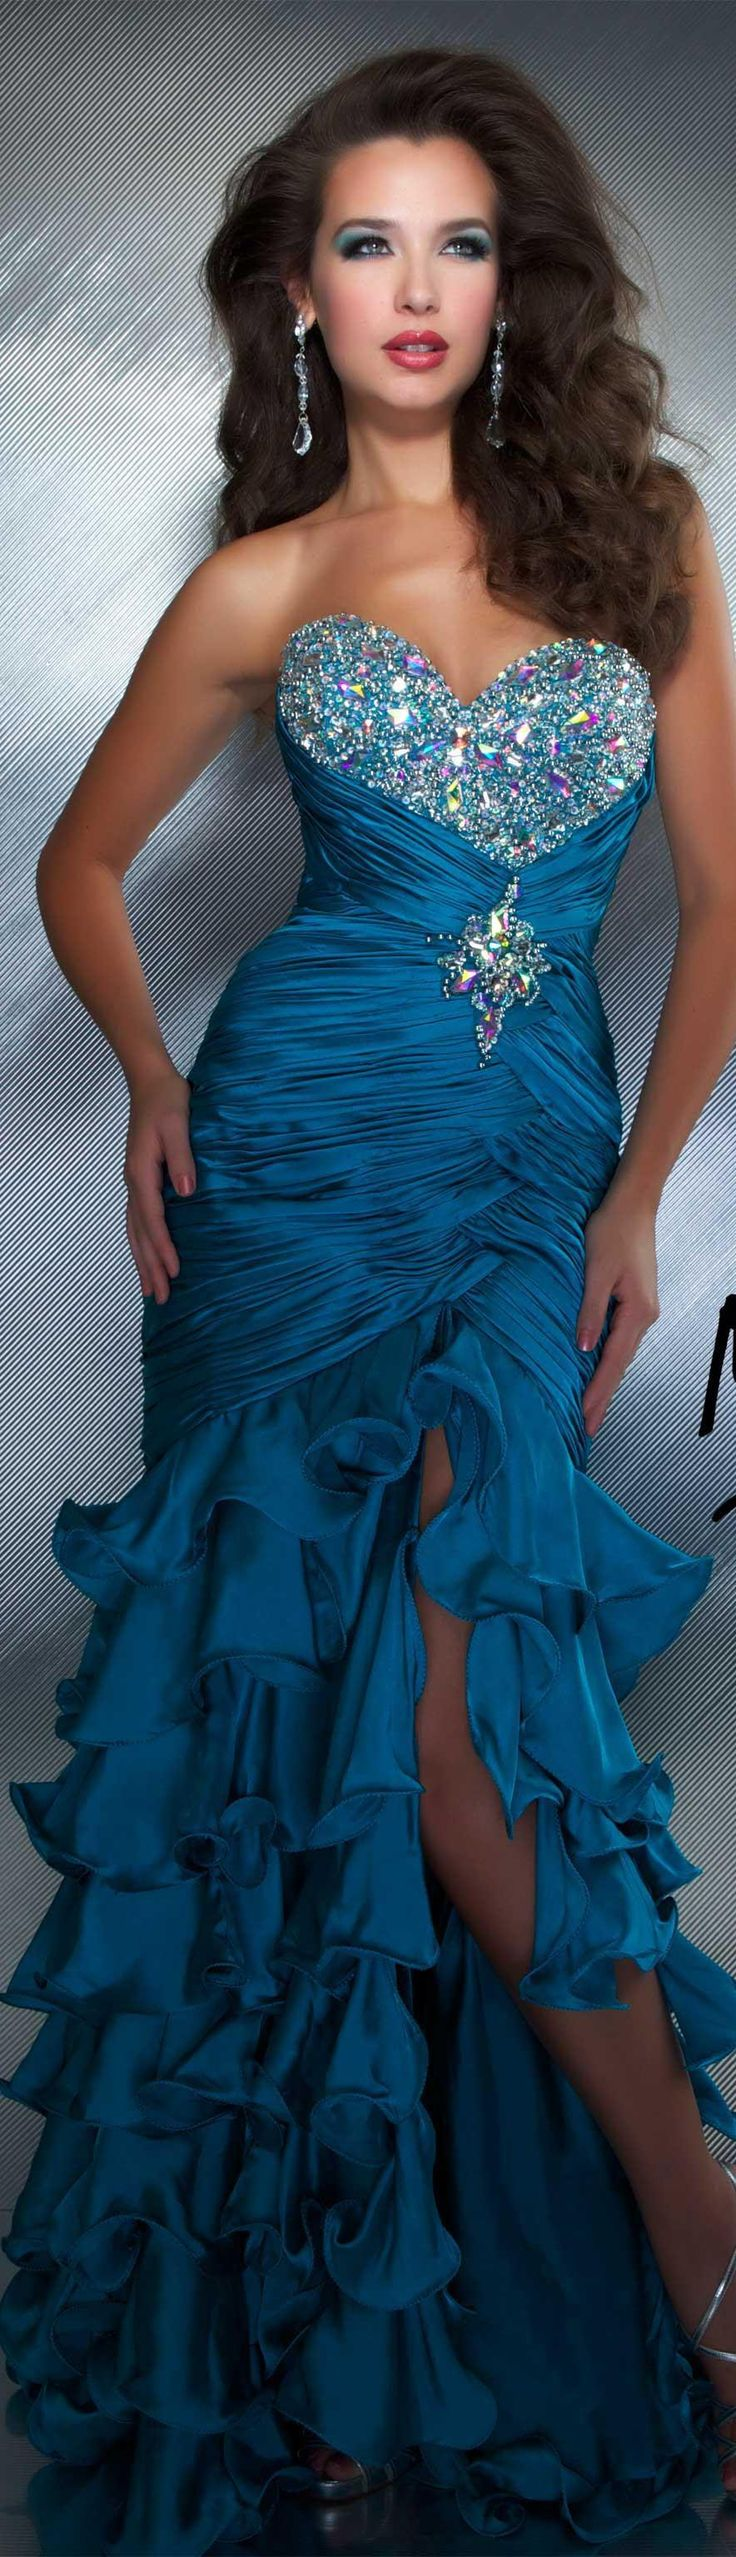 MAC DUGGAL PROM STYLE 4946M 2013 jean dress#2dayslook #maria257893 #jeansfashion ww.2dayslook.com